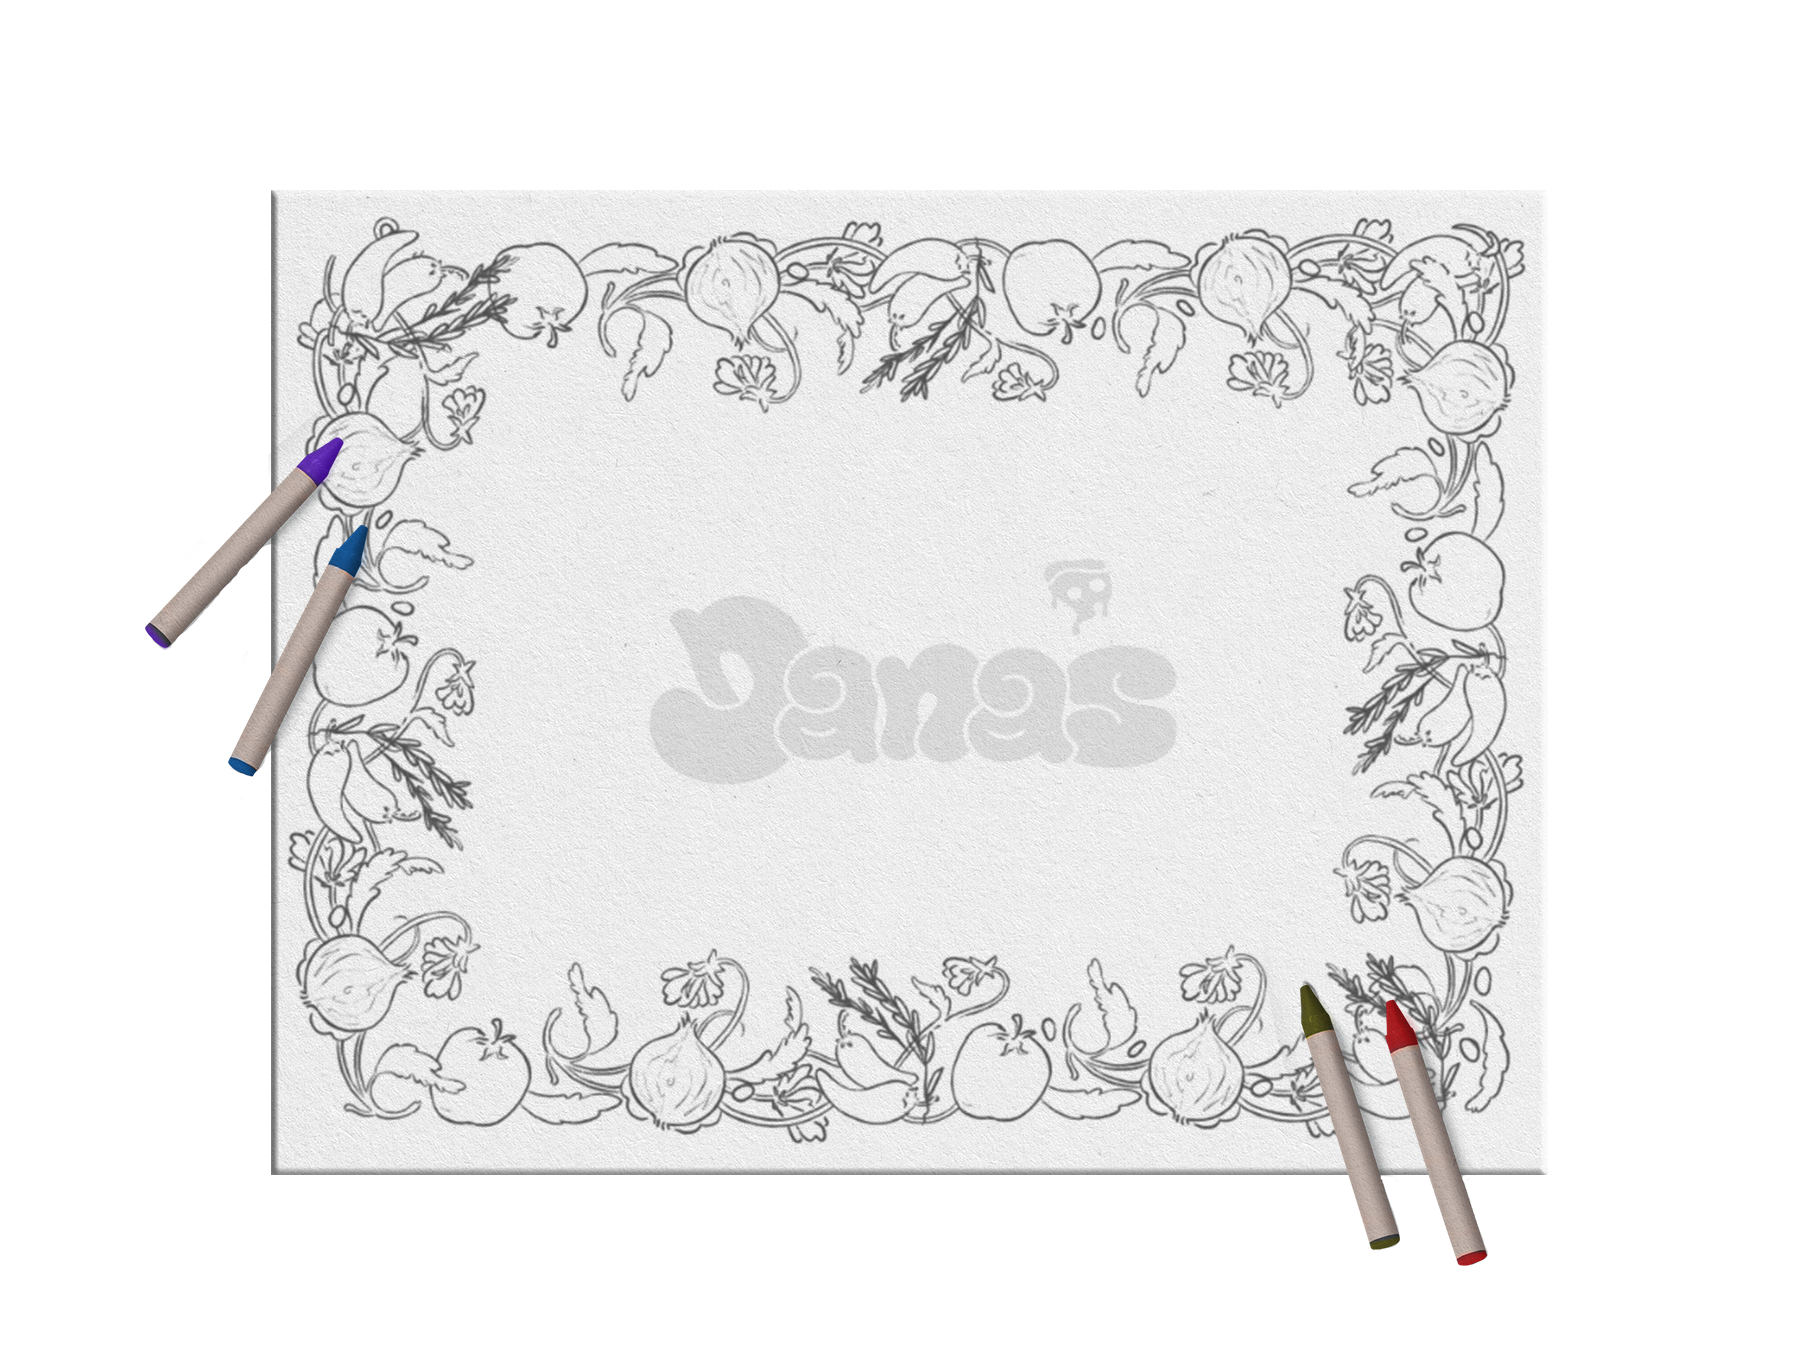 A childrens colouring placemat